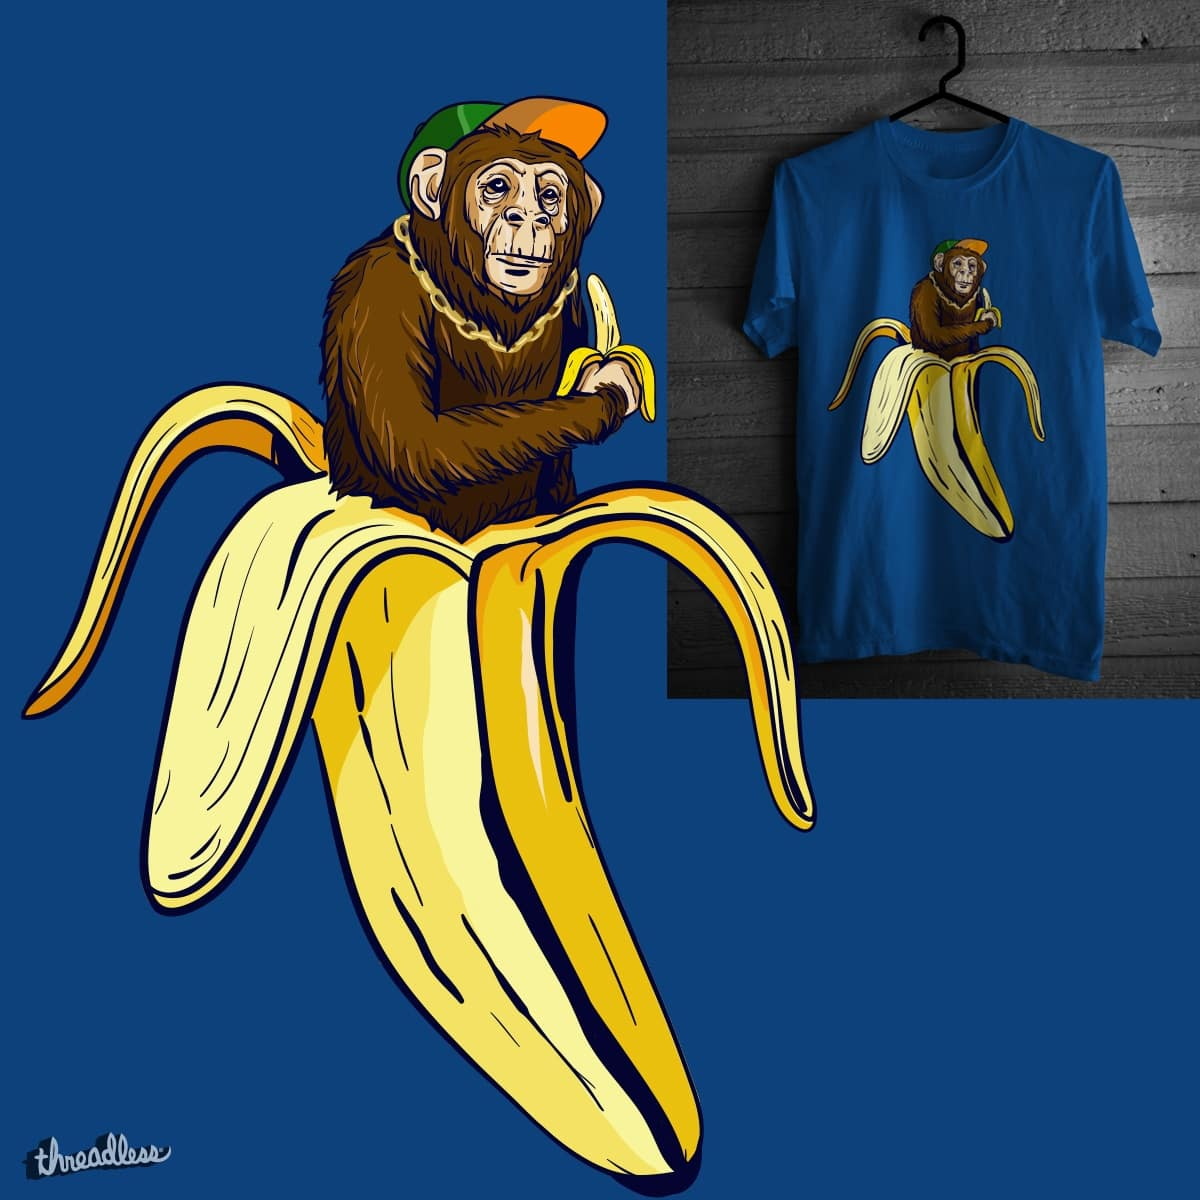 This is Bananas by urtemor_ on Threadless